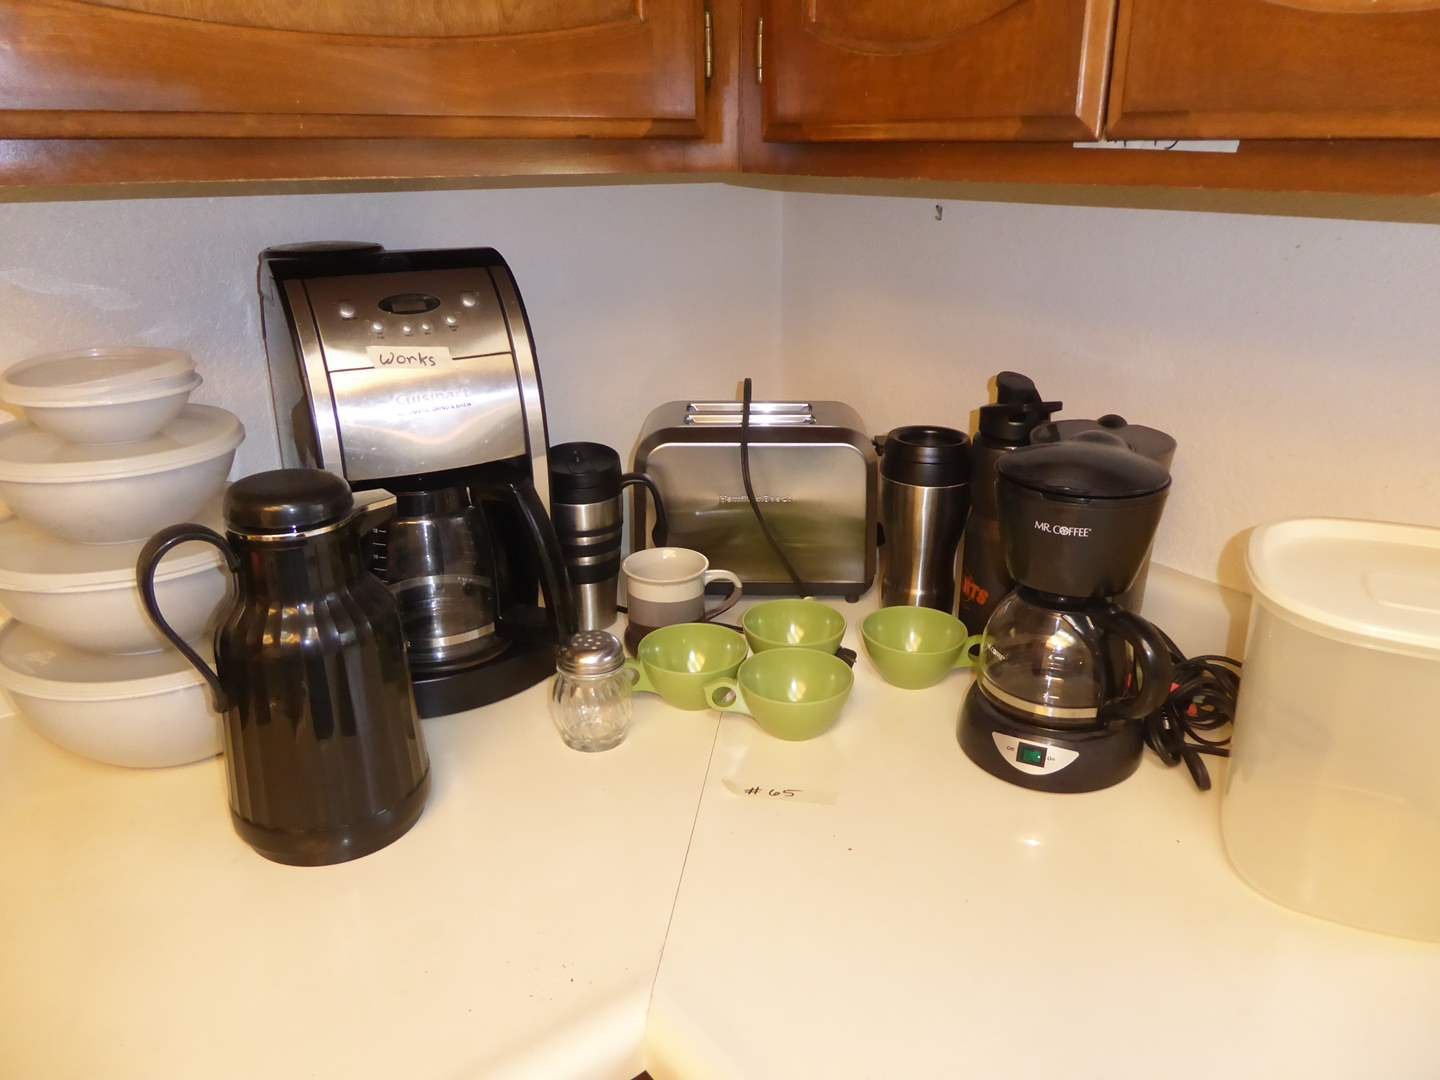 Lot # 65 - Automatic Grind & Brew Coffee Maker, Hamilton Beach Toaster & Camping Coffee Cups  (main image)